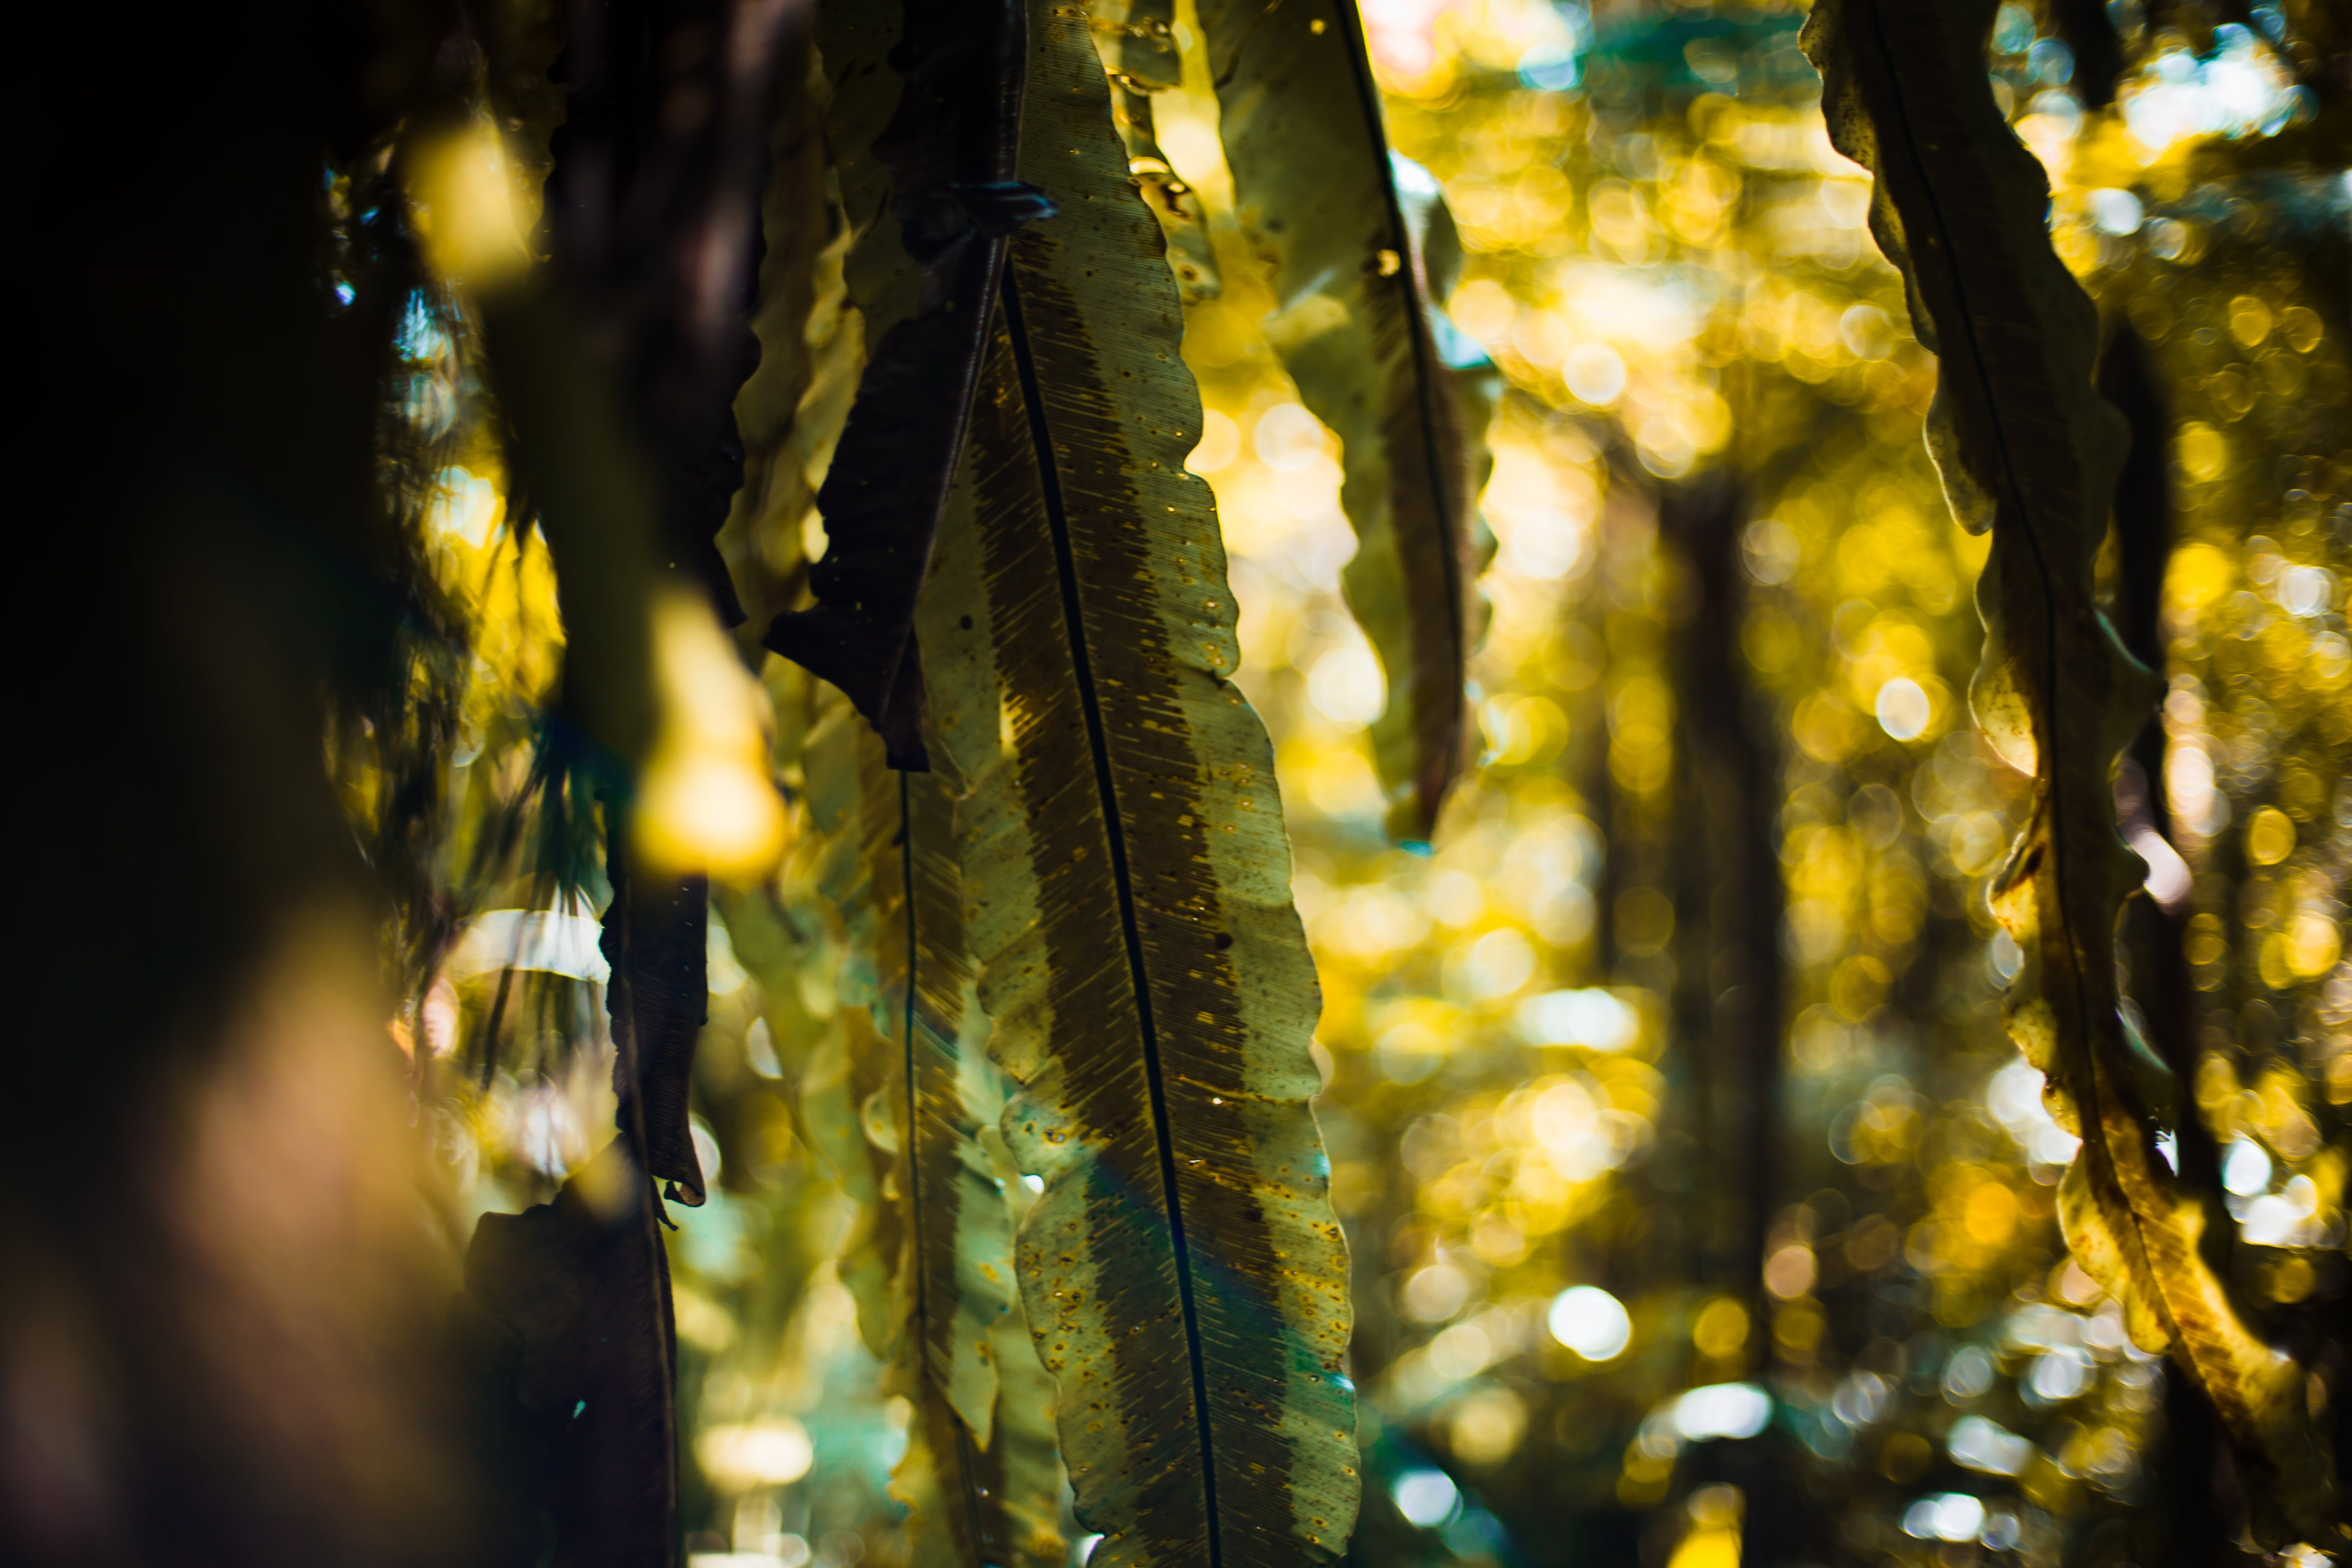 Free stock photo of bokeh, fern leaves, forest, green